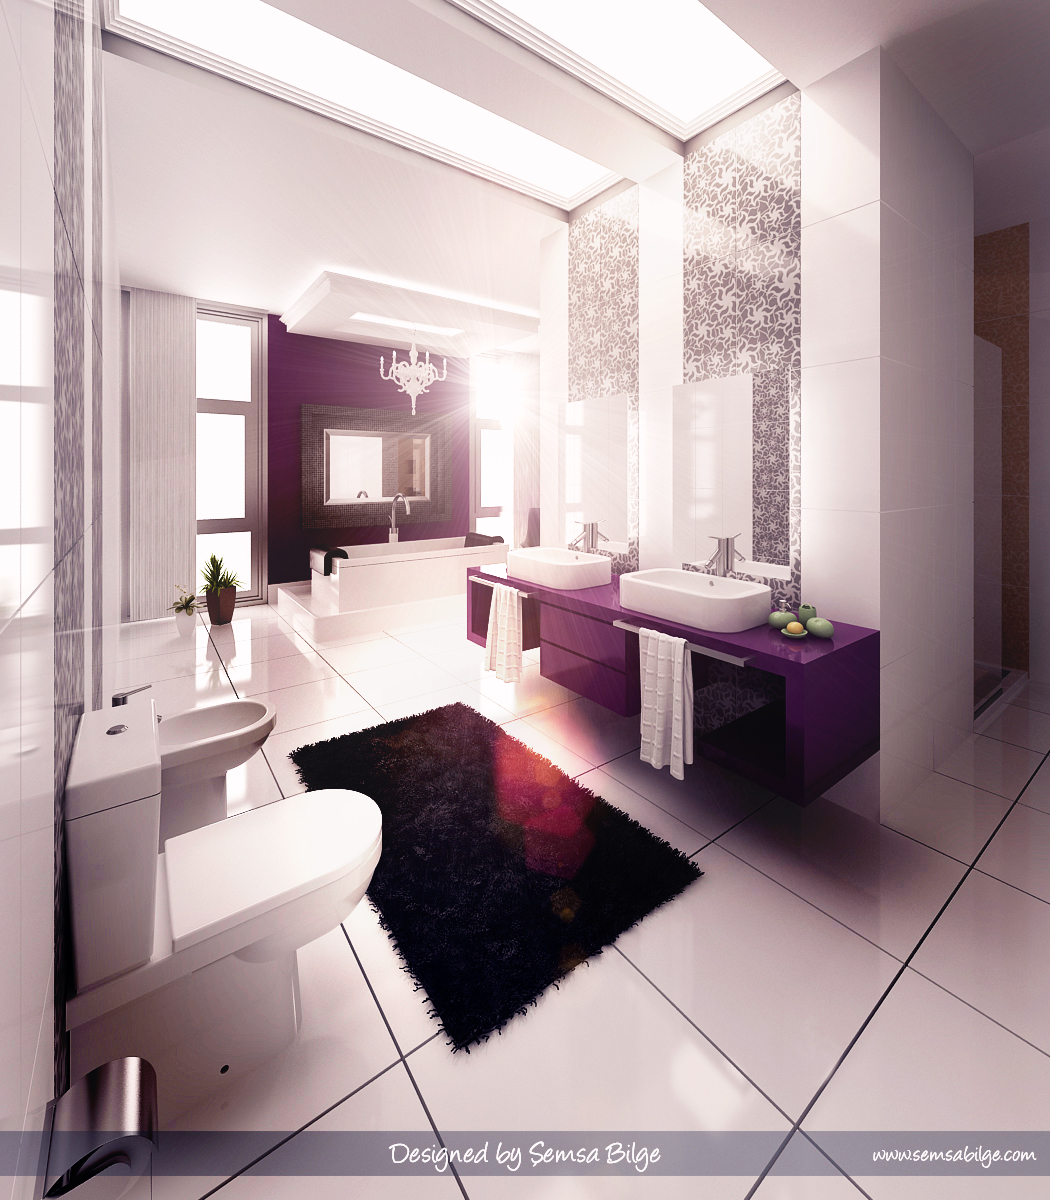 Home Design Ideas Bathroom: Inspiring Bathroom Designs For The Soul